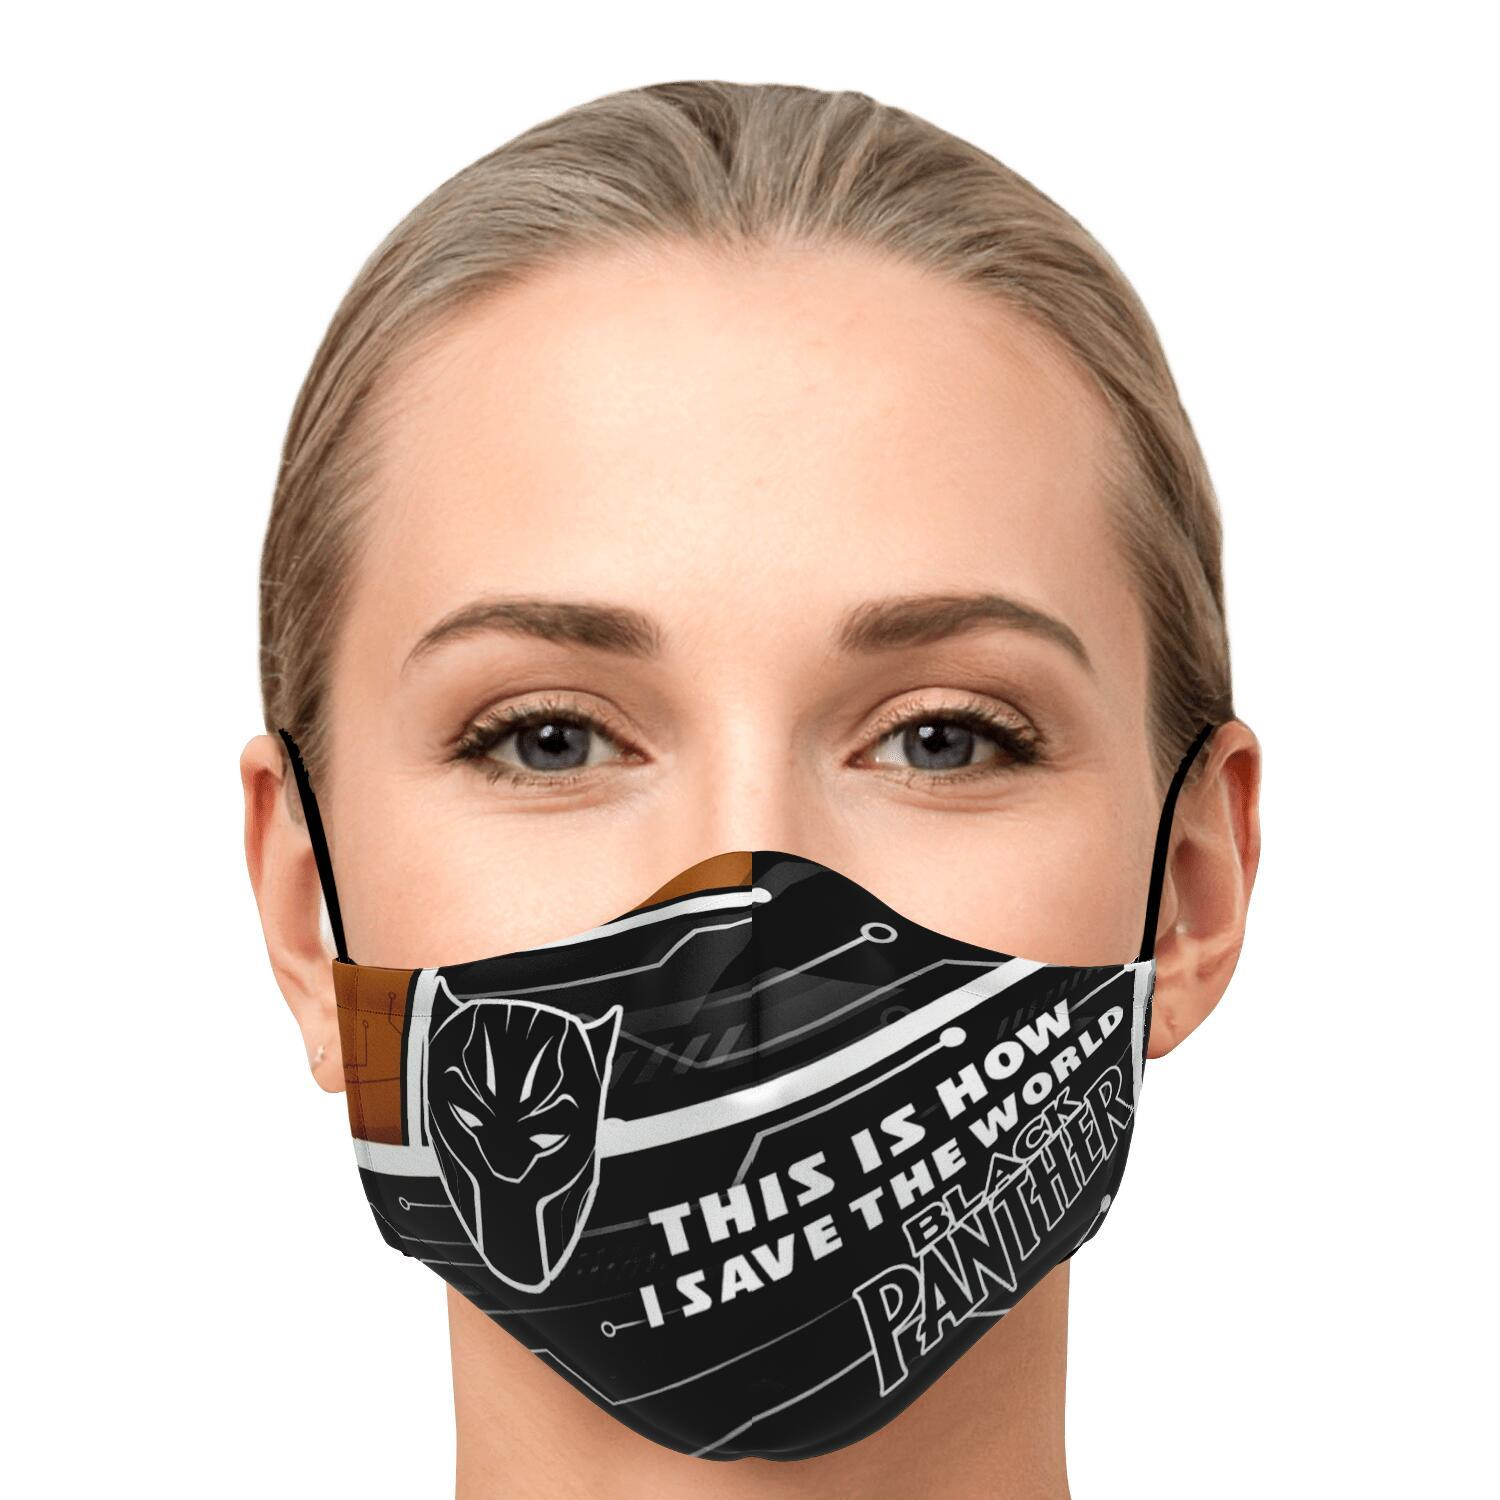 This Is How I Save The World Black Panther Face Masks 1